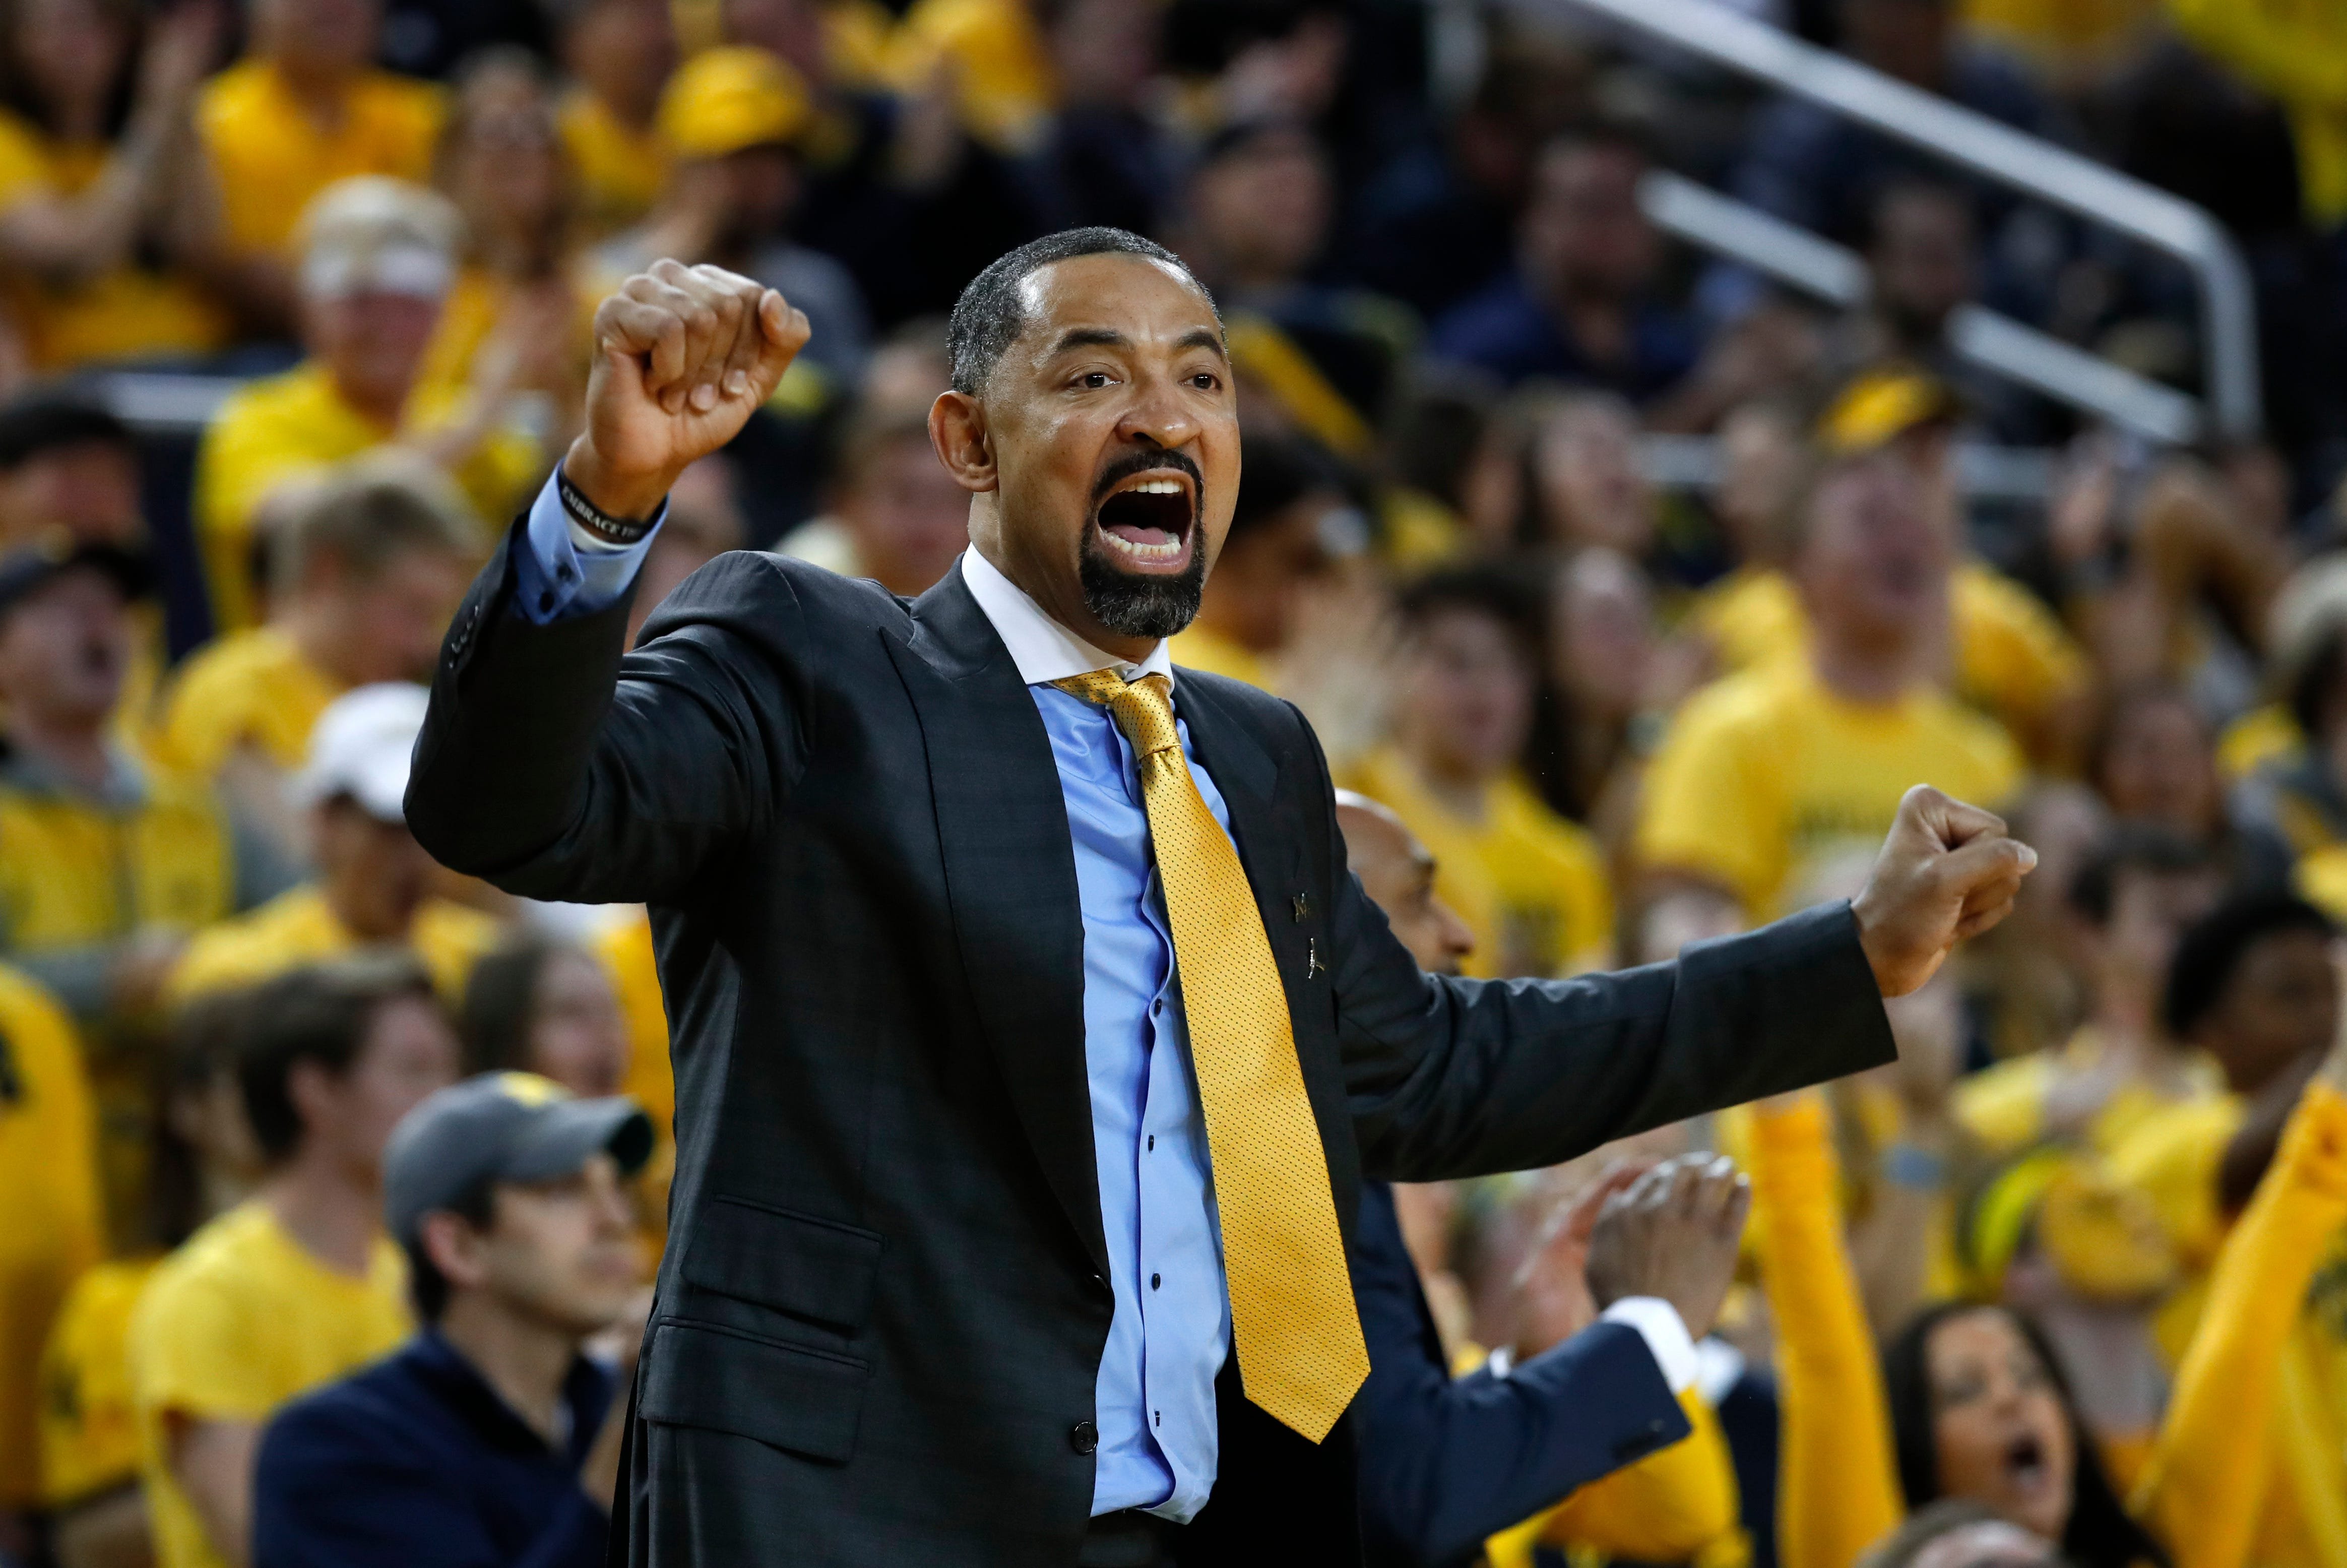 Winners and losers from college basketball's early signing period feature Michigan, Duke